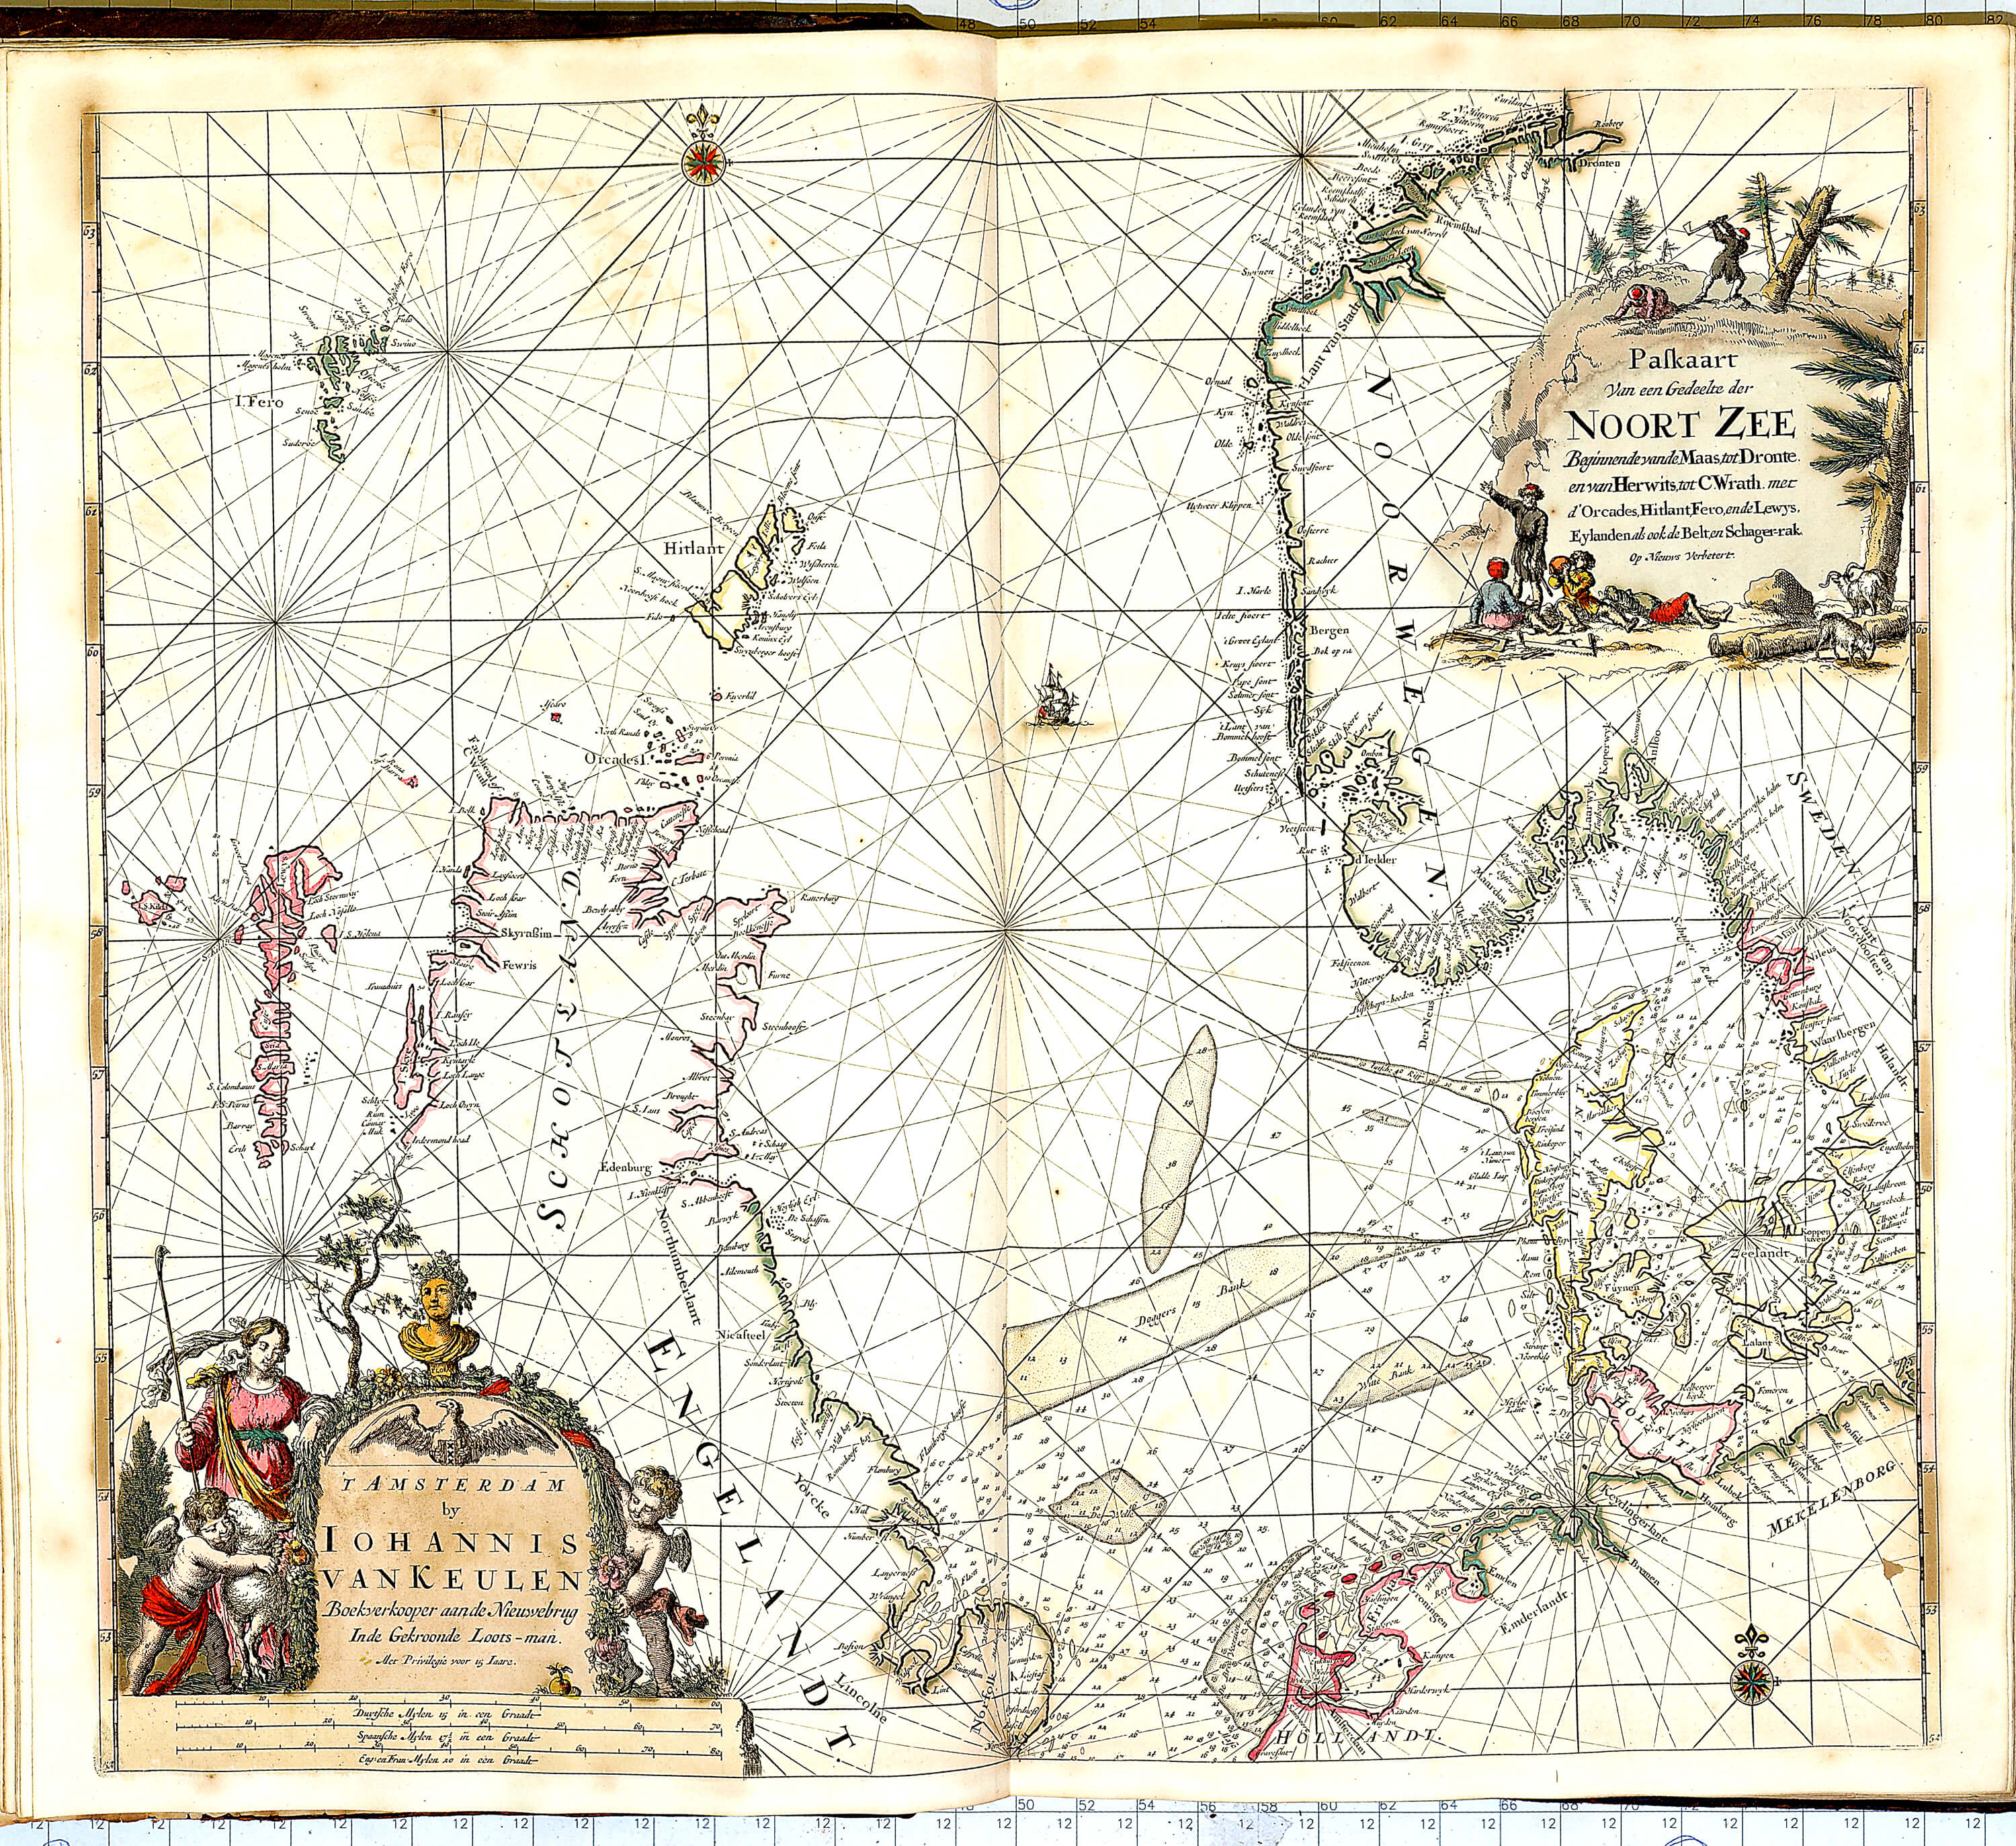 World atlas of charts by johannes van keulan z 1 17 1696 part 1 z 1 17 006 north sea gumiabroncs Gallery